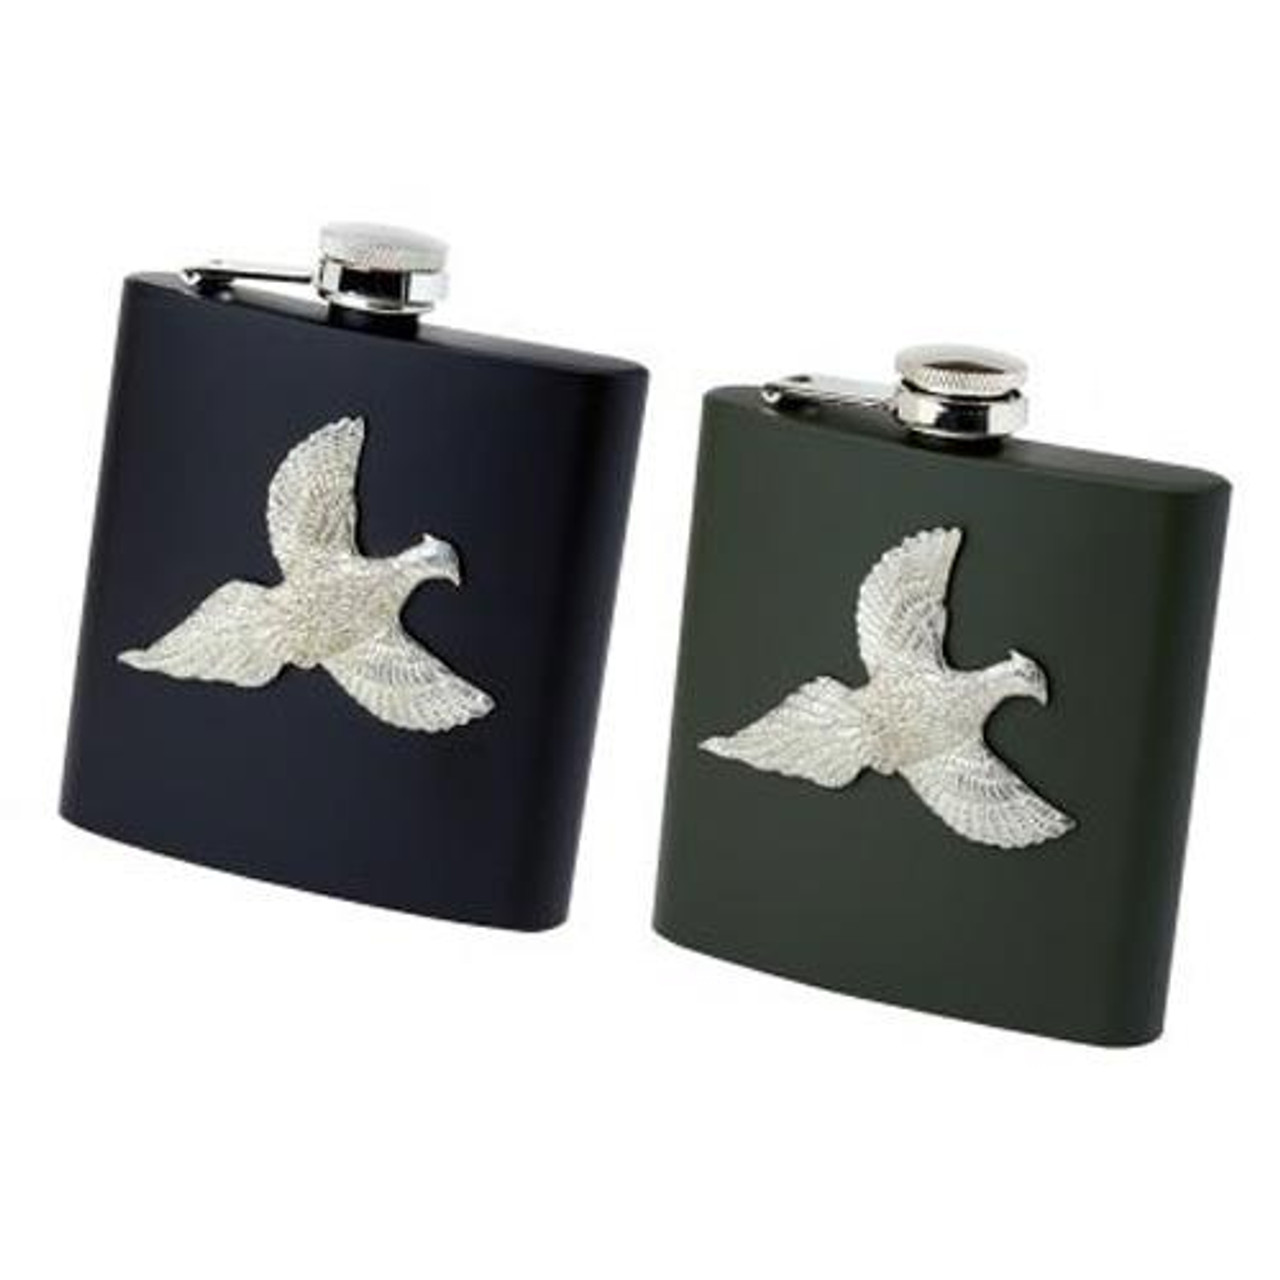 Black/Green Bisley Metal Pheasant Hip Flask